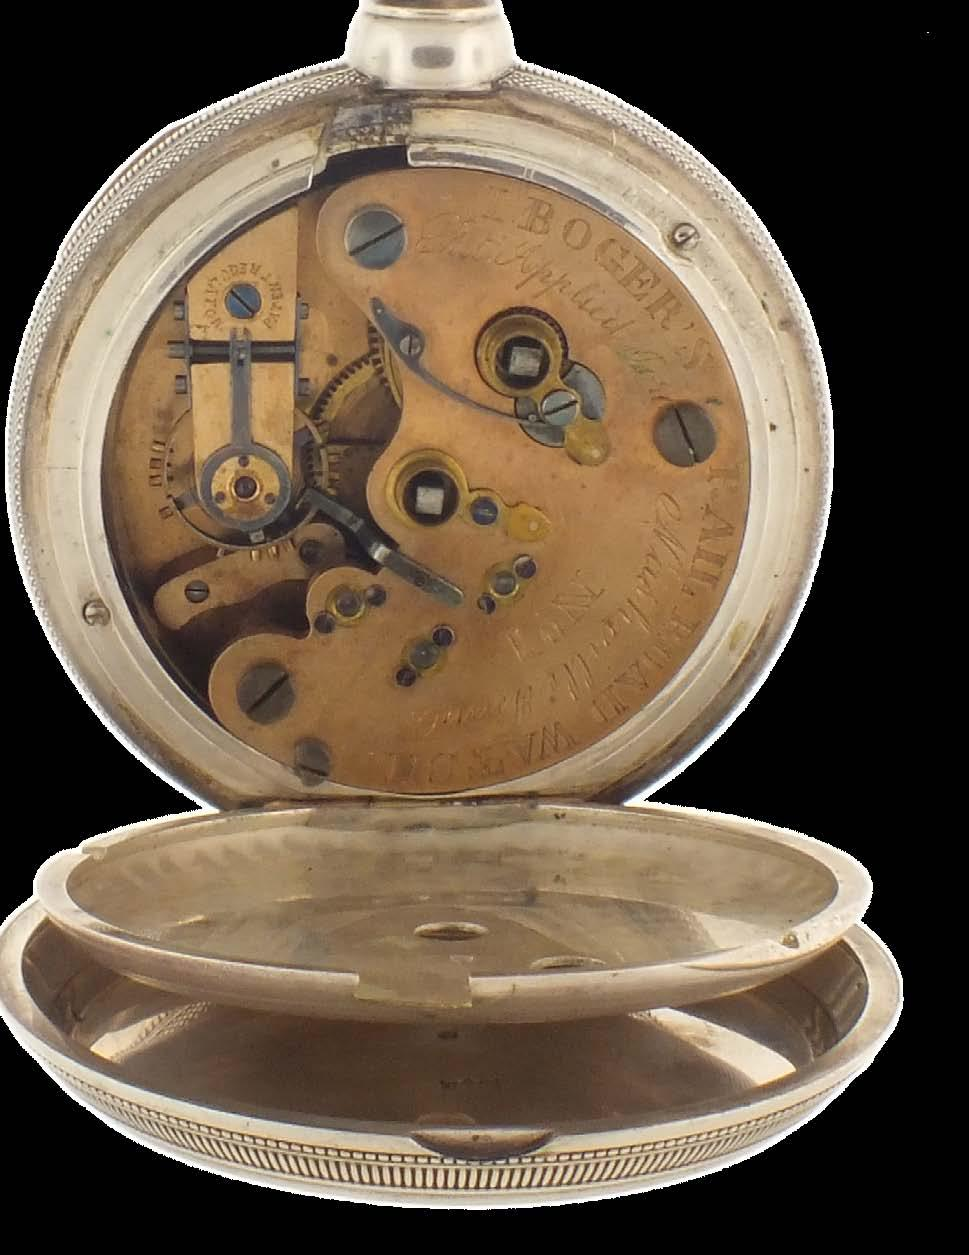 Auctioneer Daniel Horan, NH License #5060 Lot 1034 contents 1 Event Announcements 4 antiques & Early photography 12 Mechanical music 13 carriage & Desk Clocks 26 Chronometers, Deck watches & Nautical